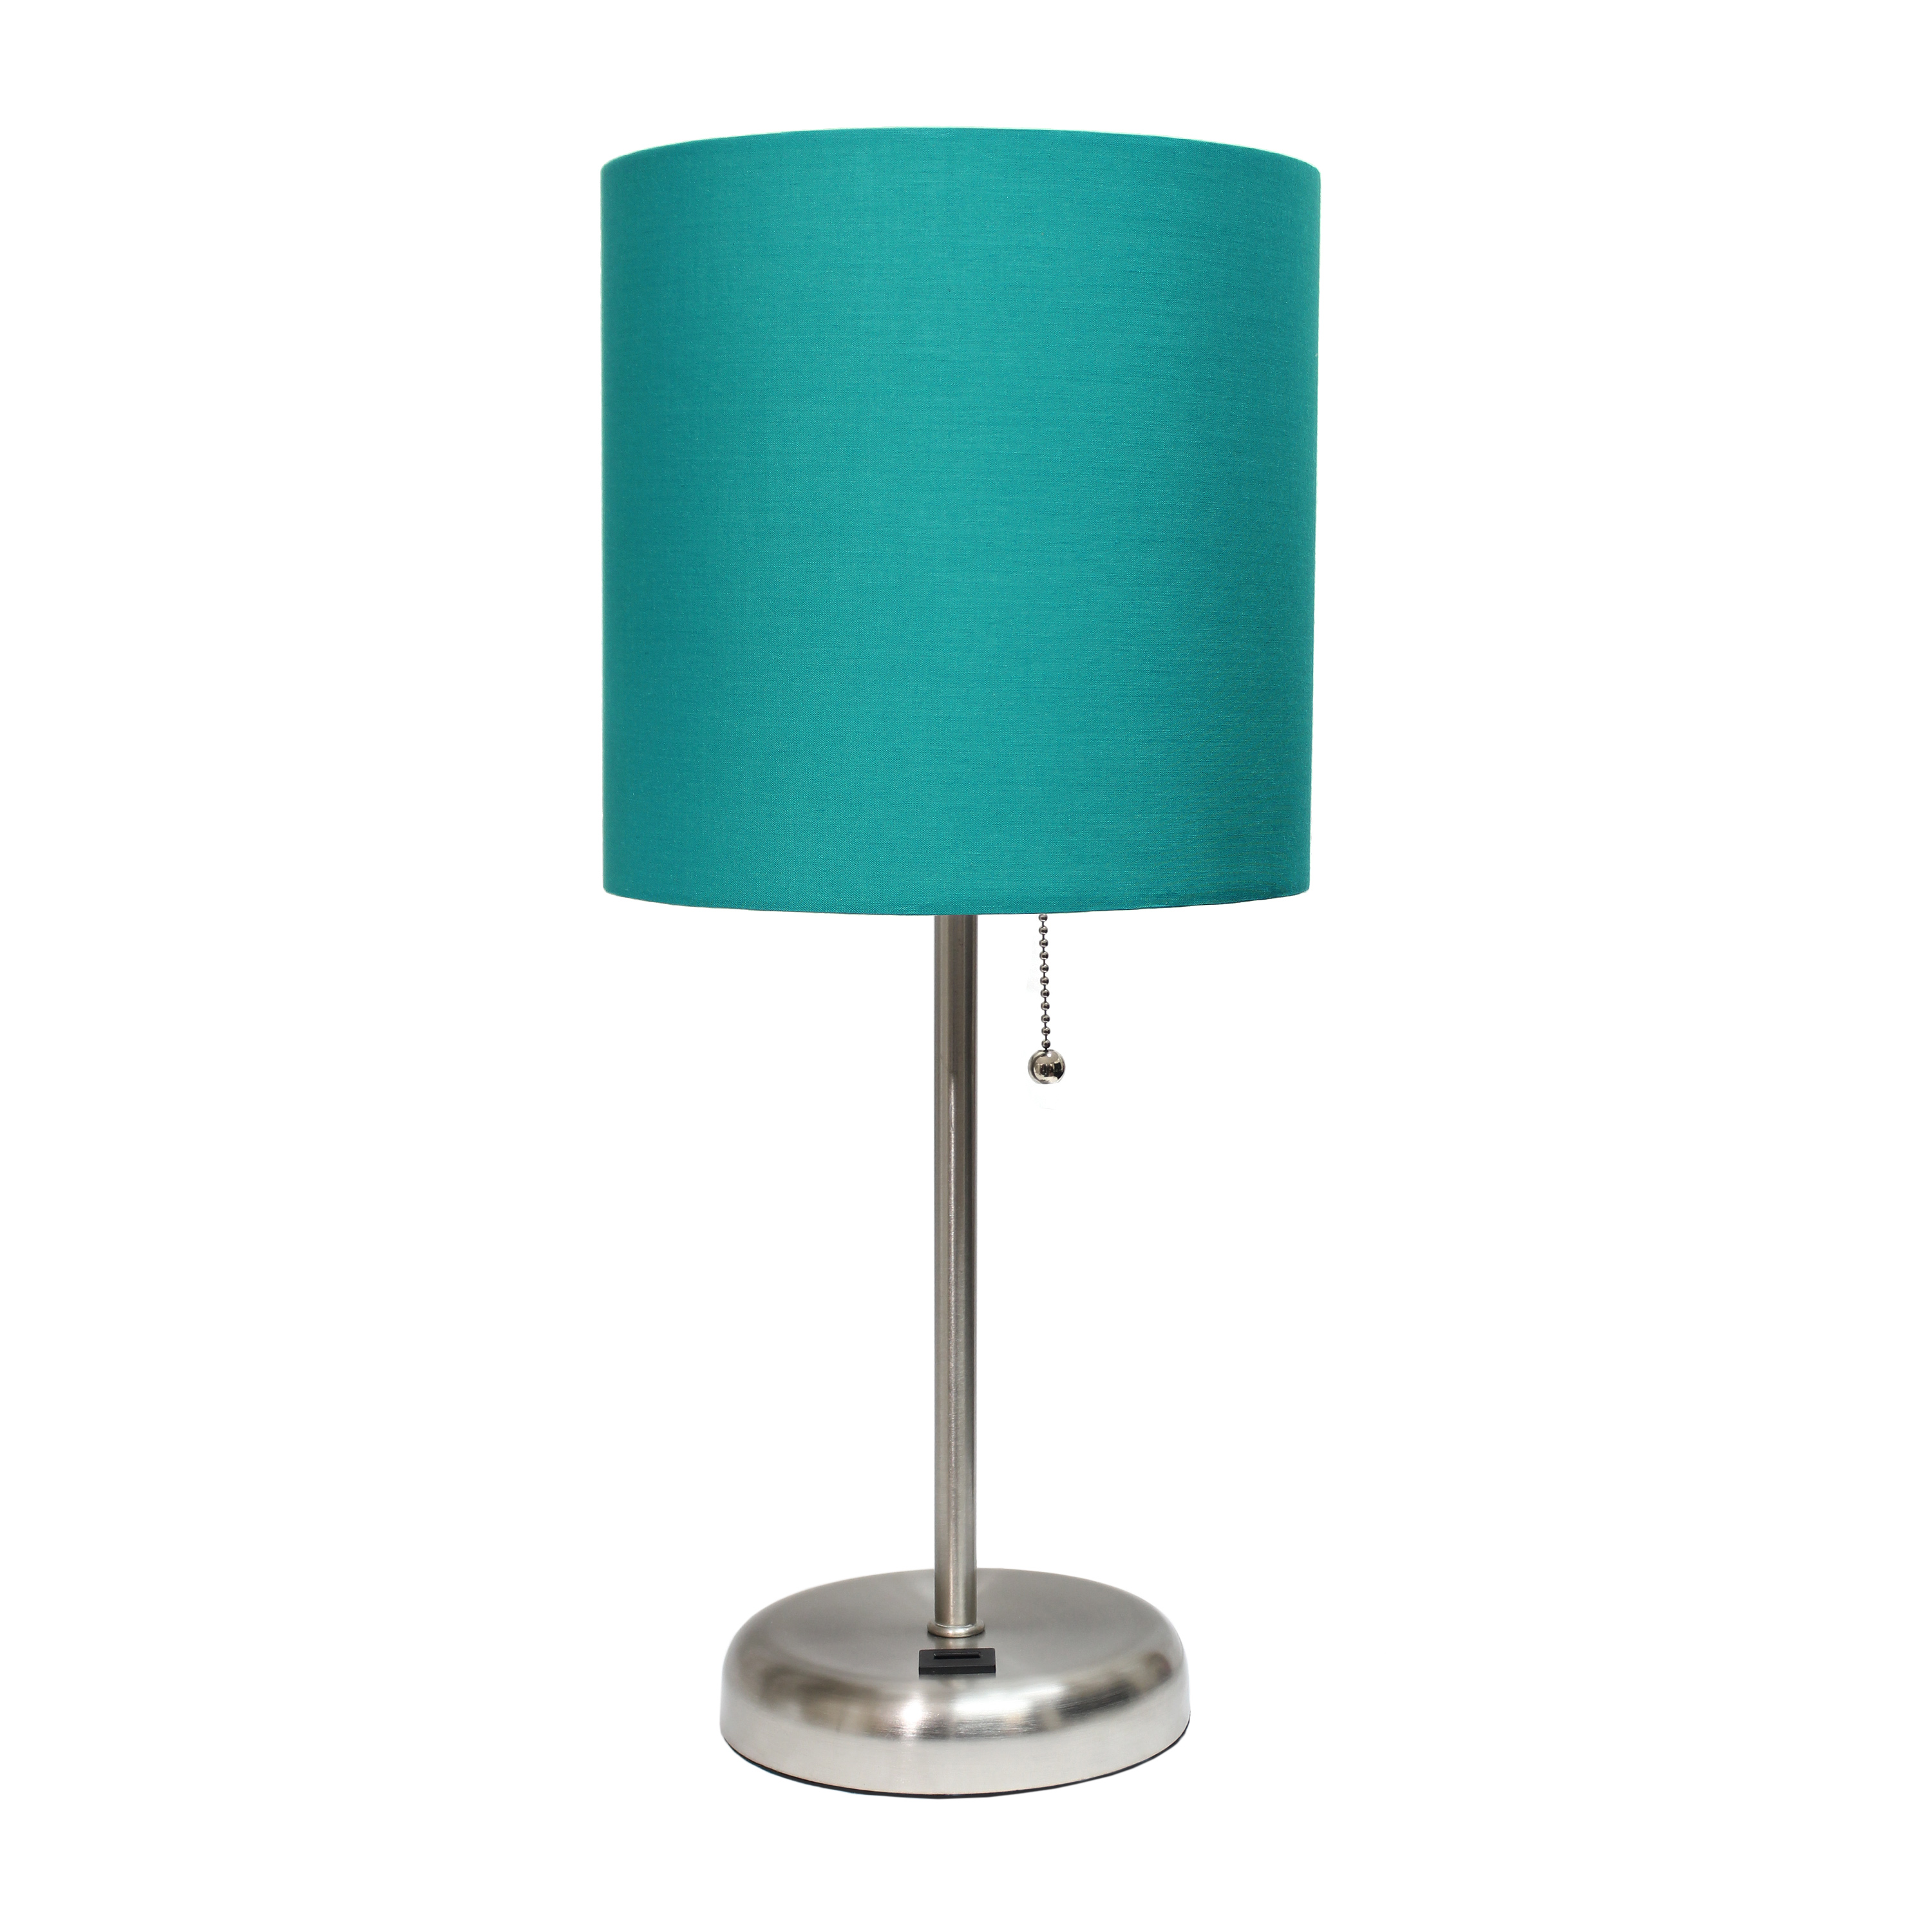 LimeLights Stick Lamp with USB charging port and Fabric Shade, Teal